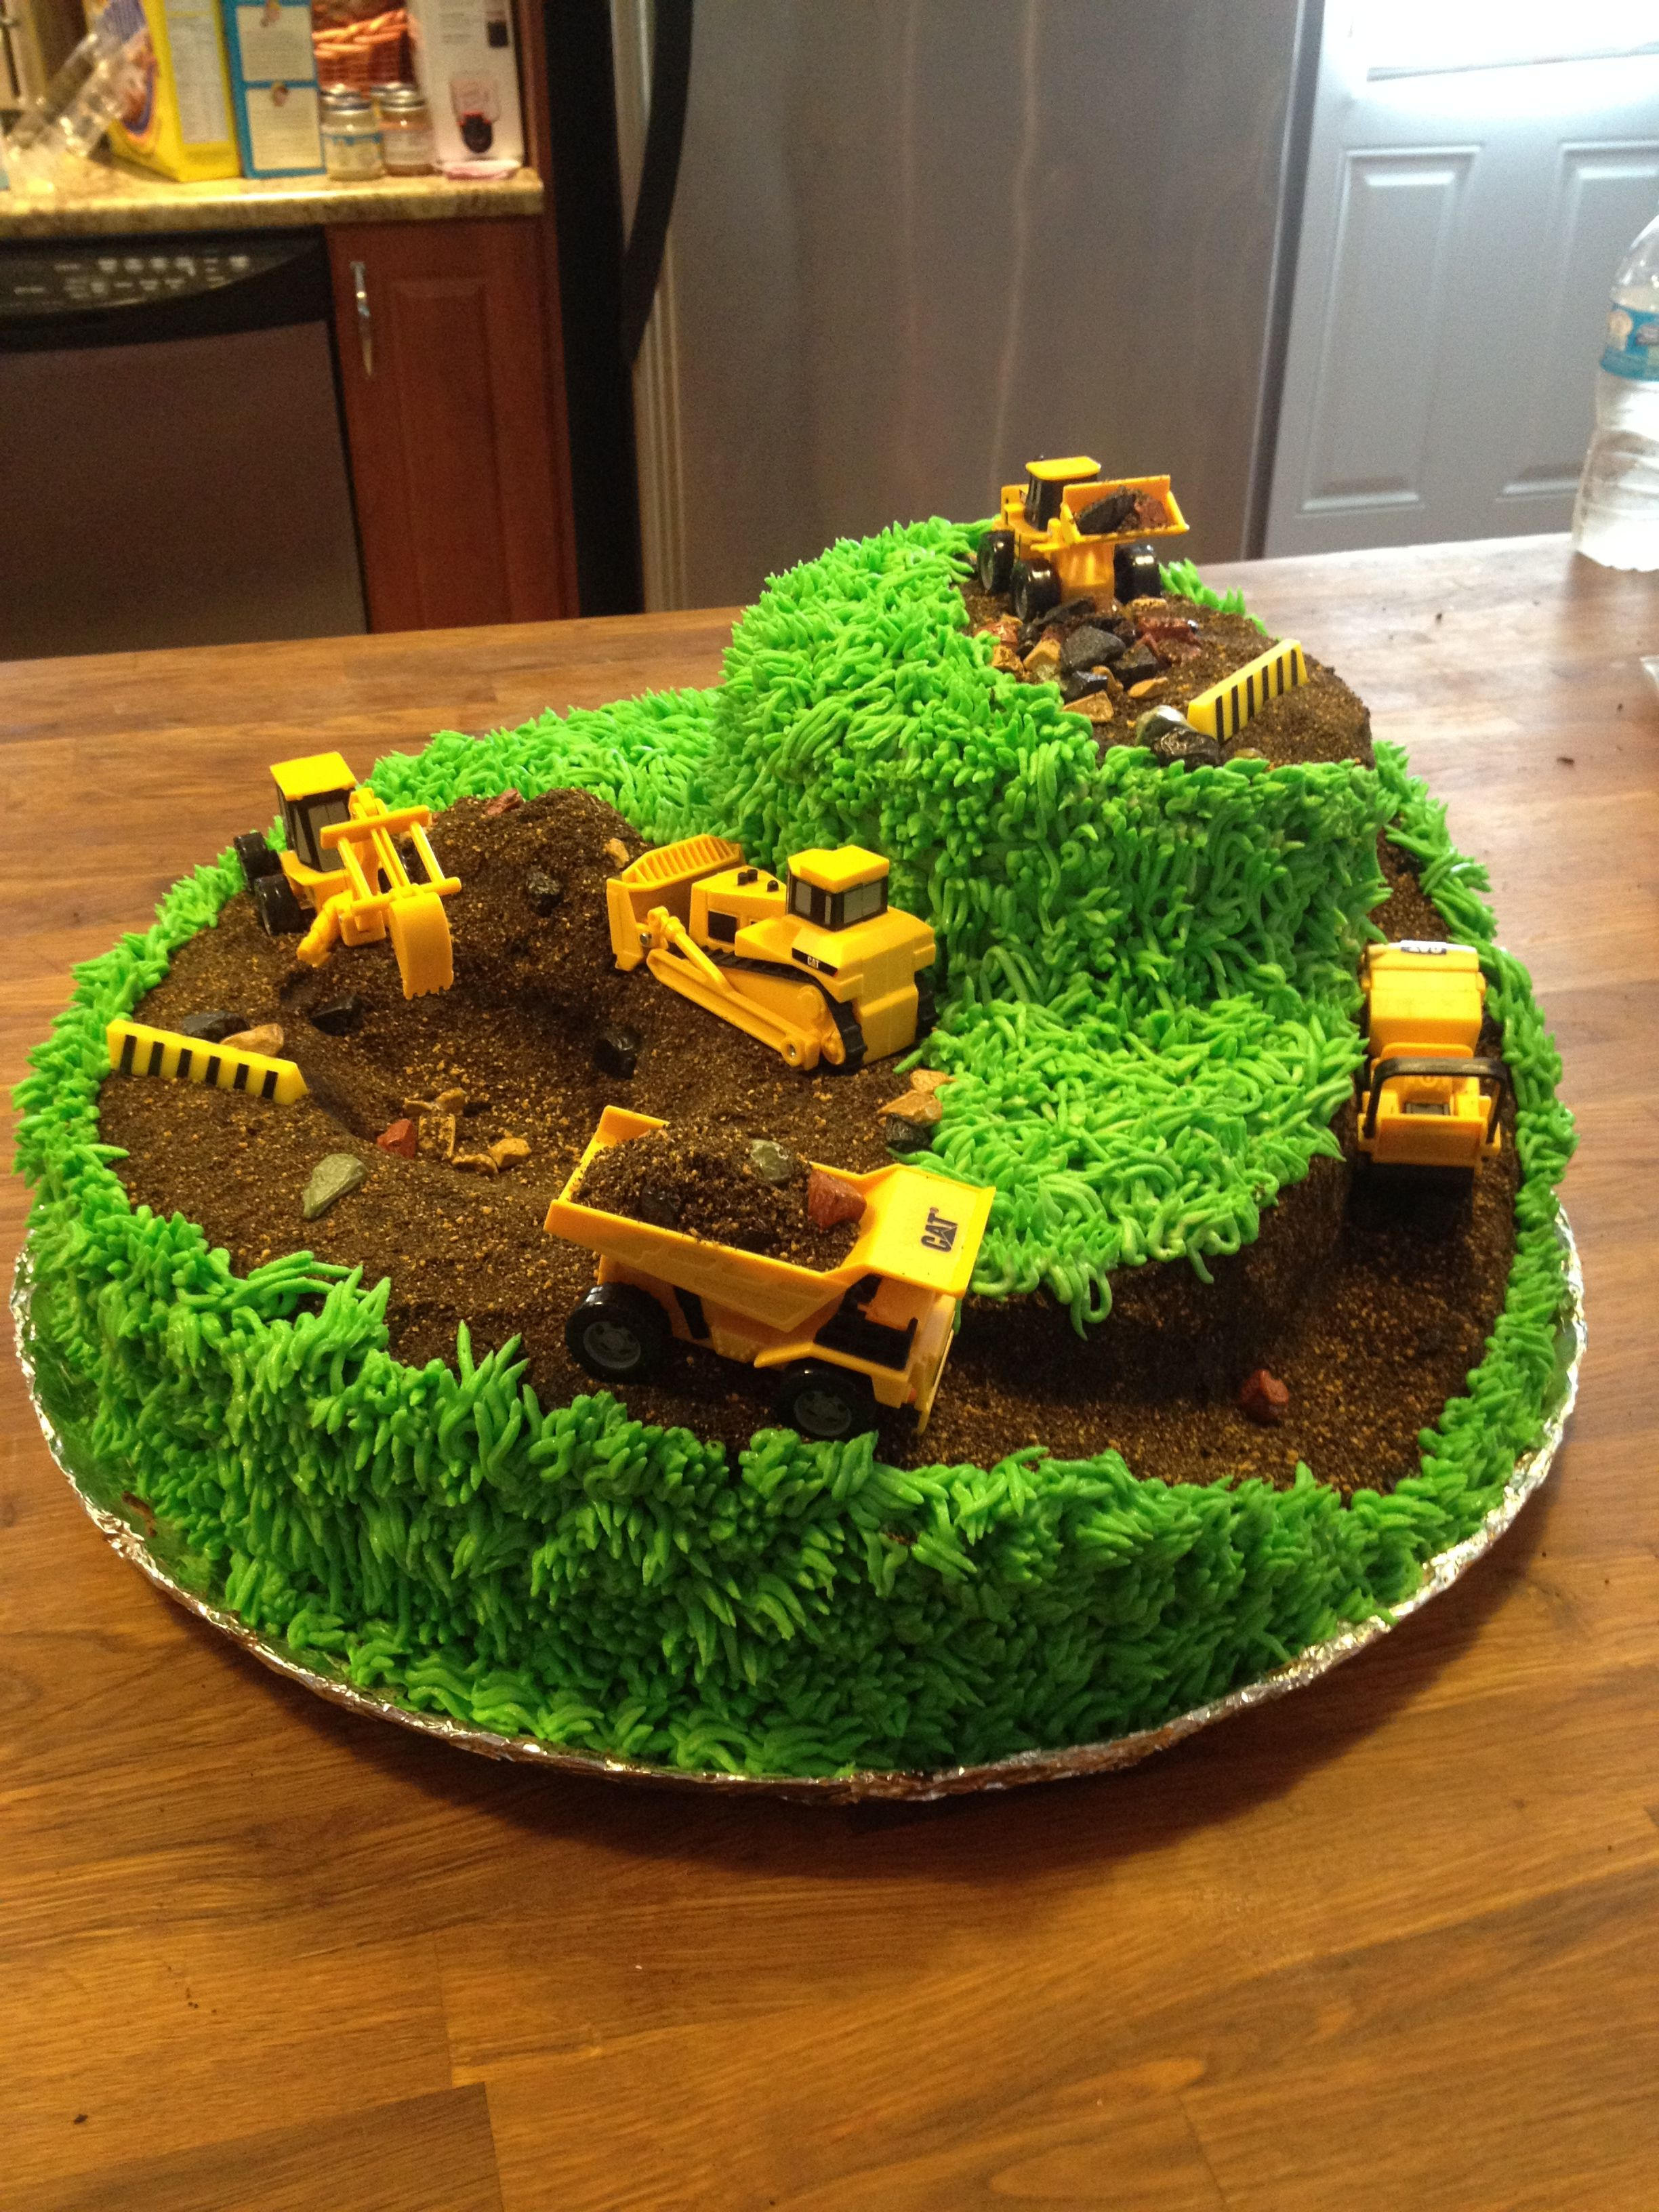 Construction Cake With Risers And Holes Dug Into The Surface Of It